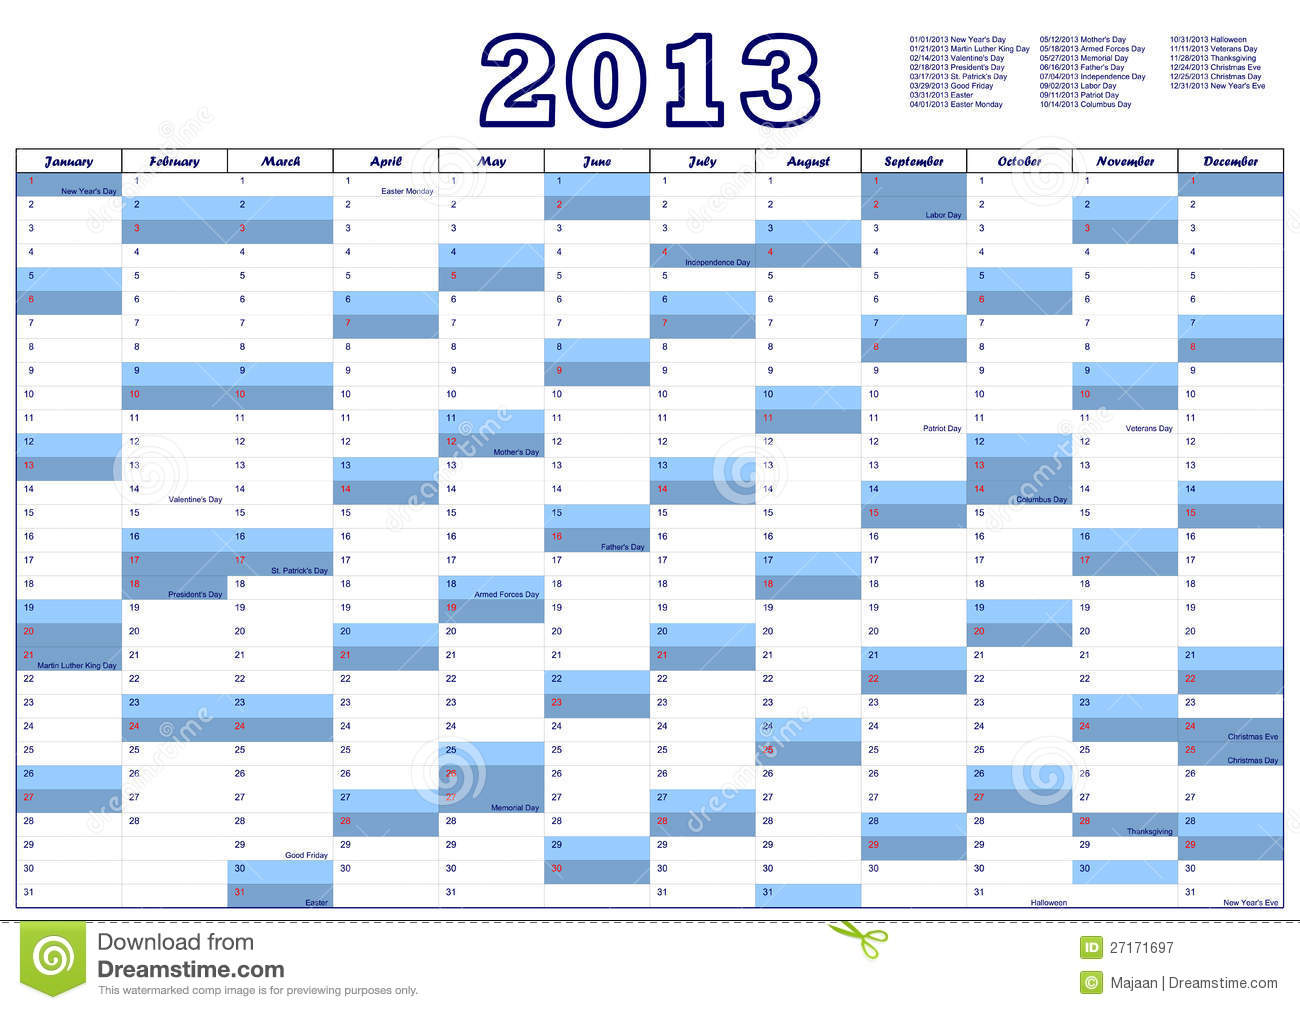 2013 Federal Holidays Observed | just b.CAUSE